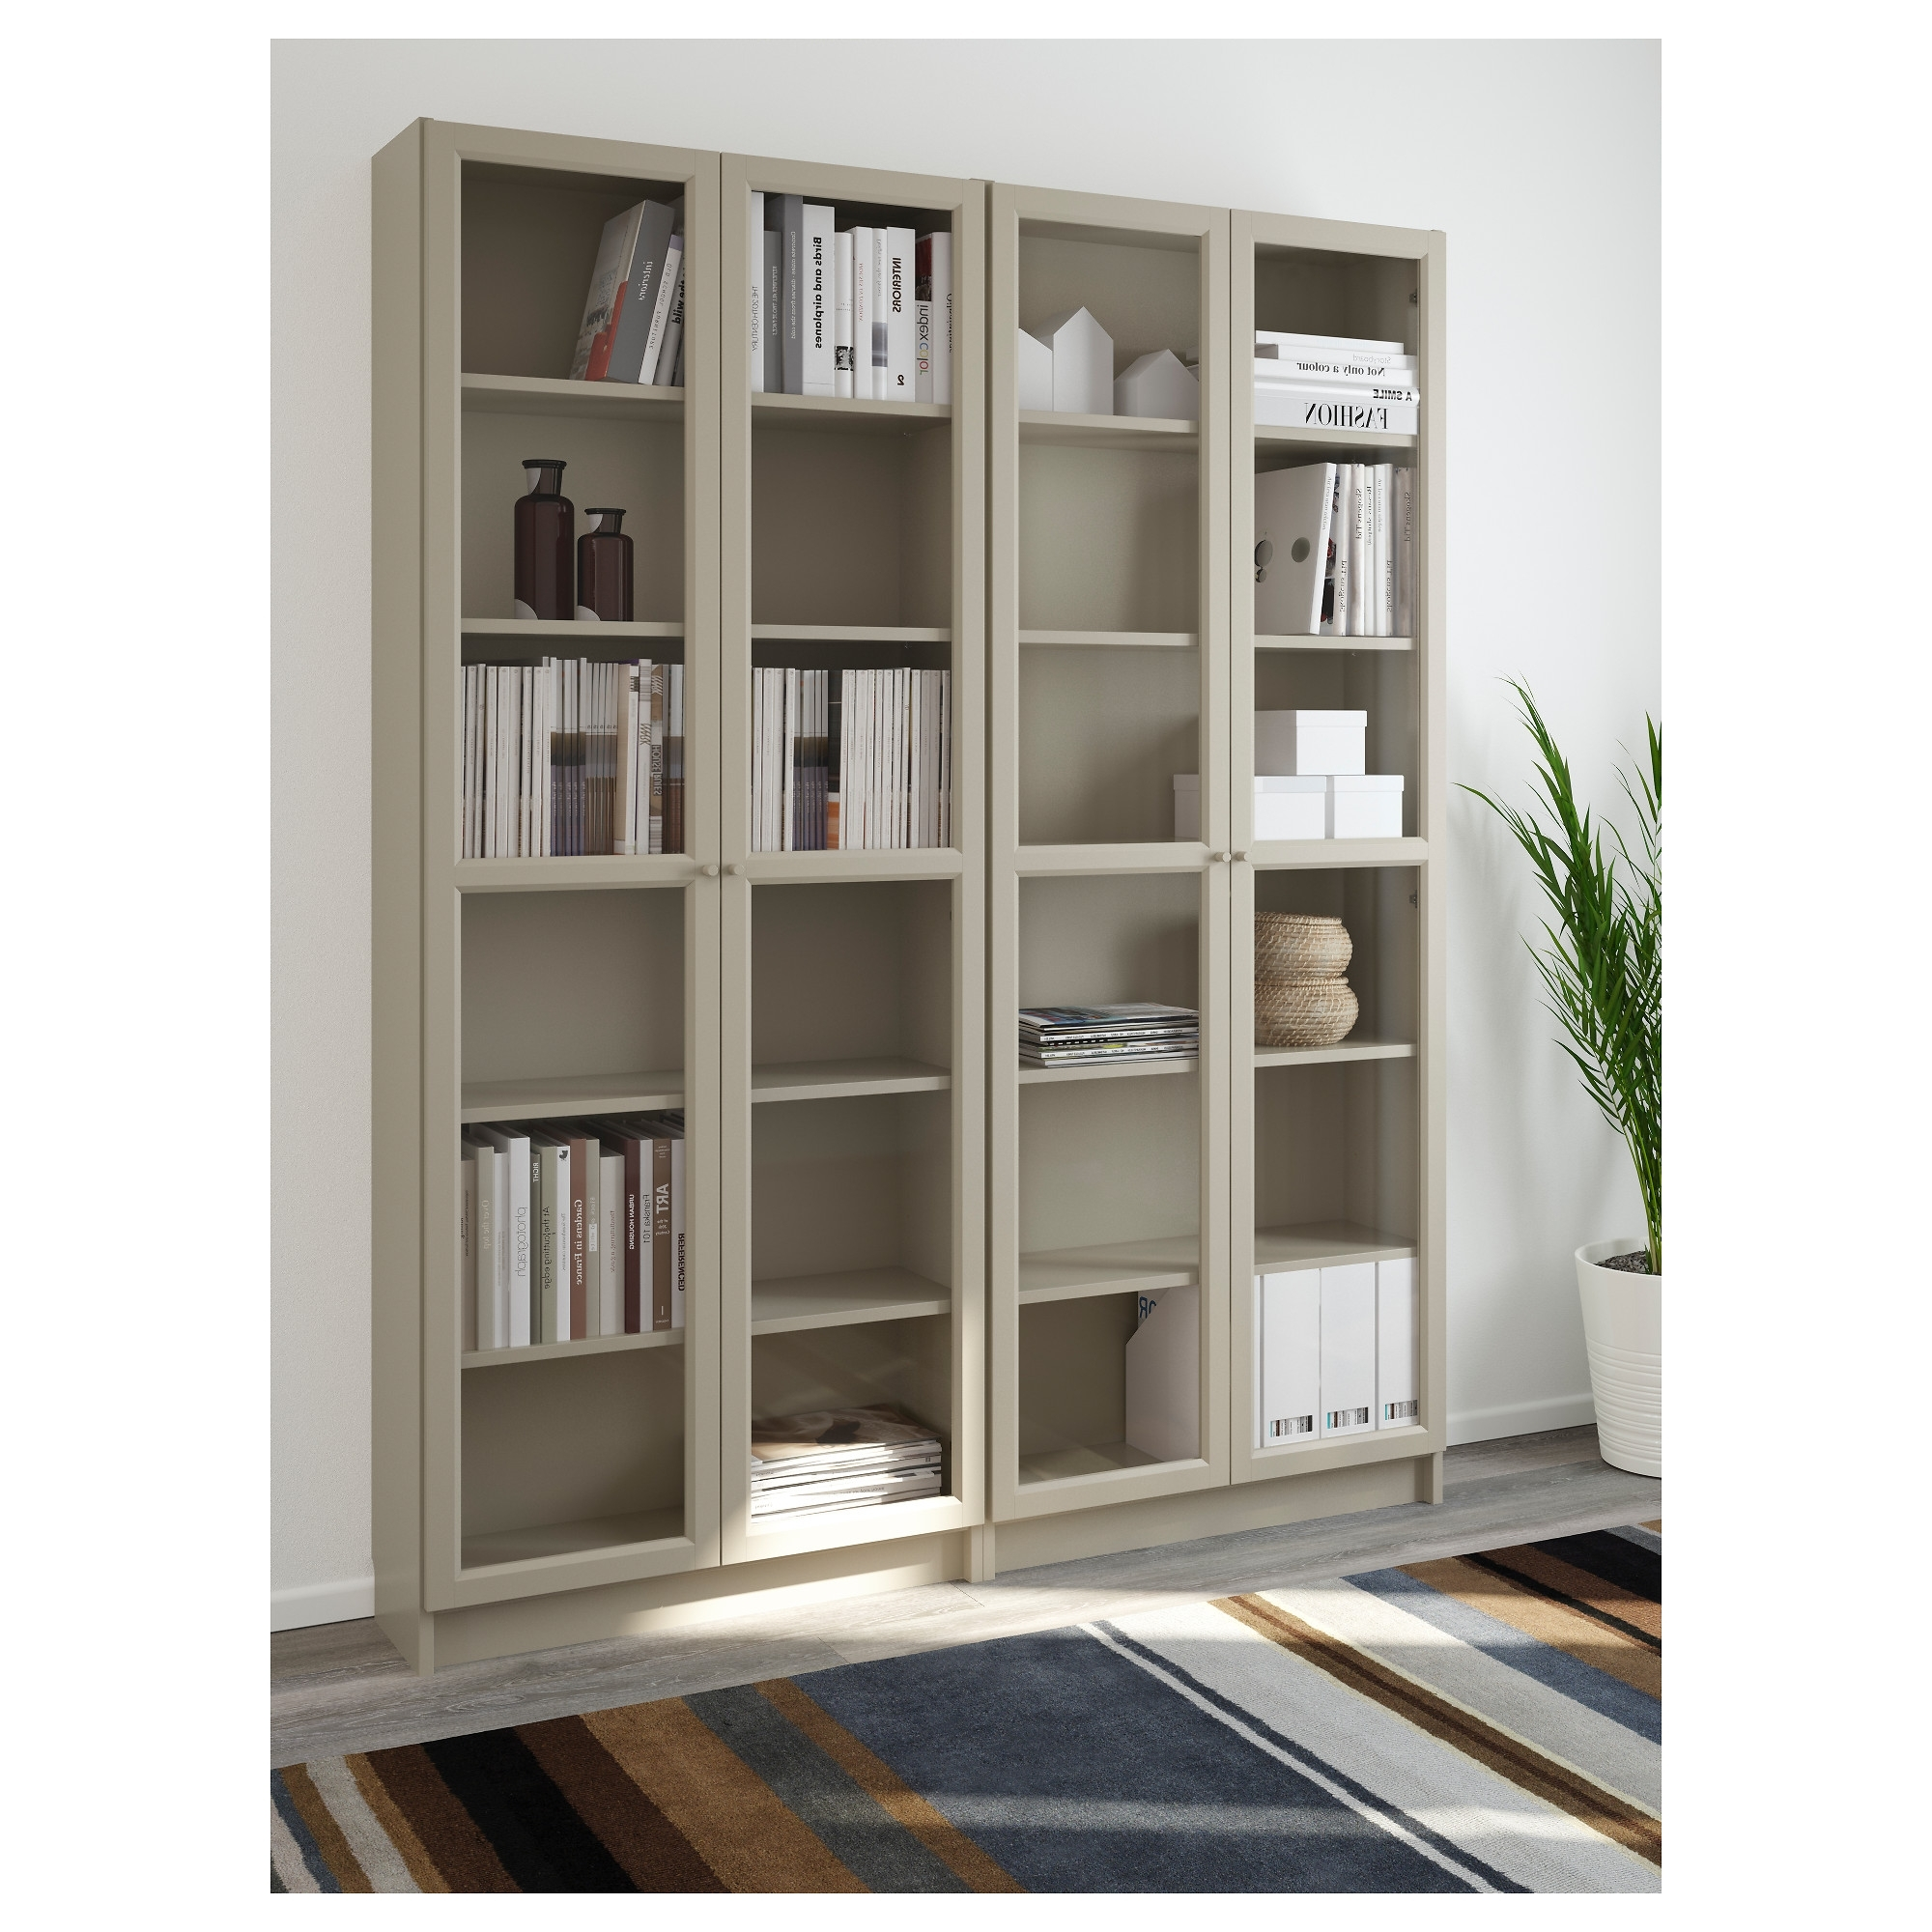 Ikea Billy Bookcases With Regard To Most Popular Billy Bookcase – Beige – Ikea (View 13 of 15)